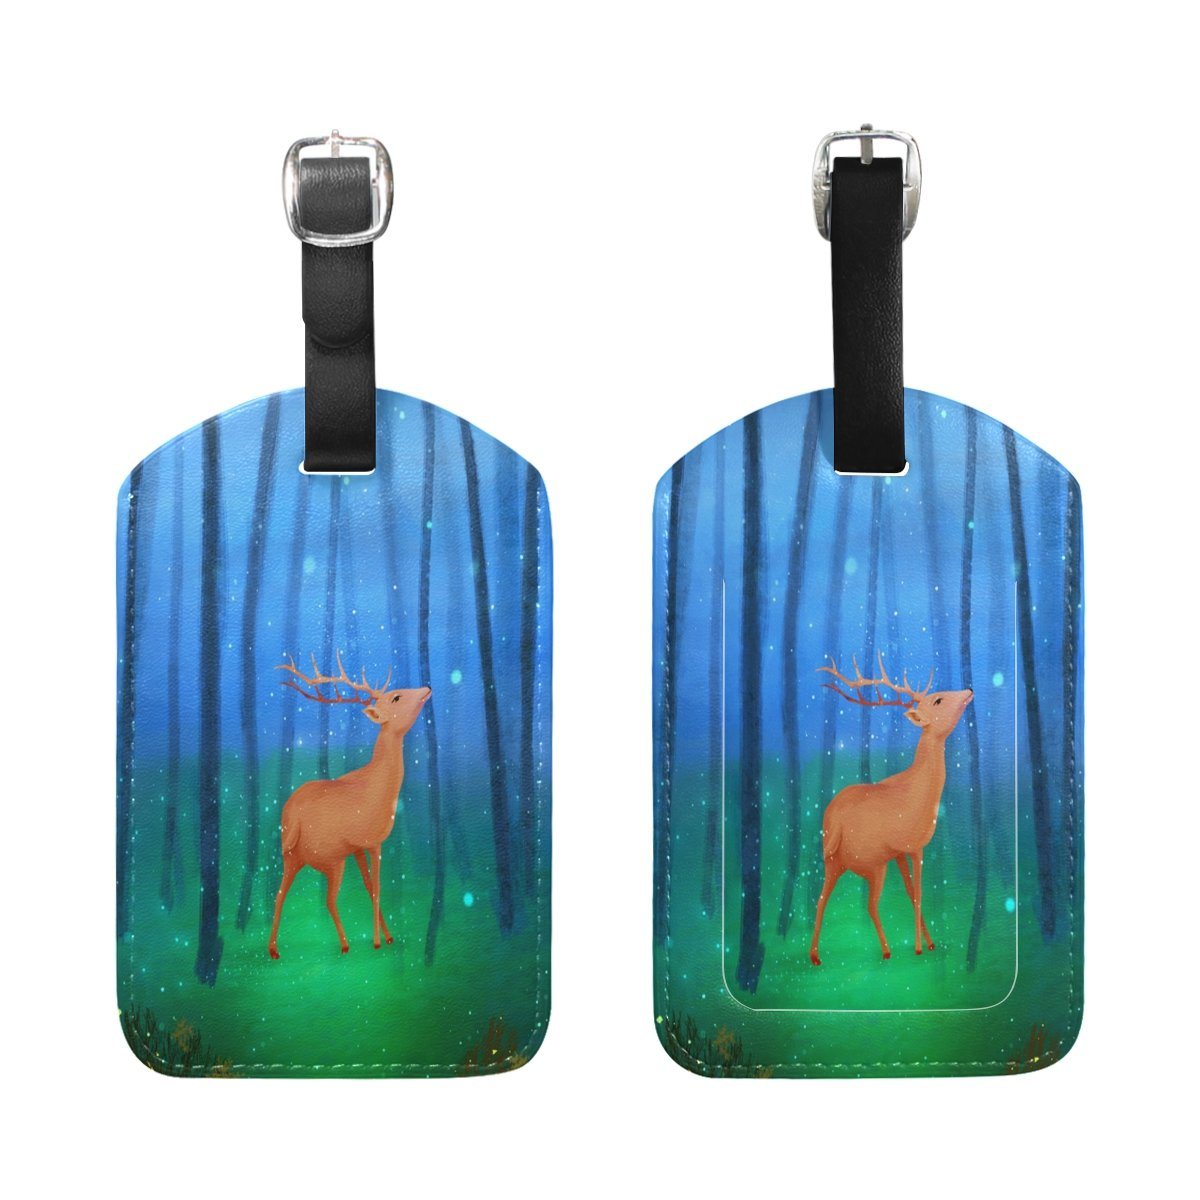 1Pcs Saobao Travel Luggage Tag Elk And Forest PU Leather Baggage Suitcase Travel ID Bag Tag